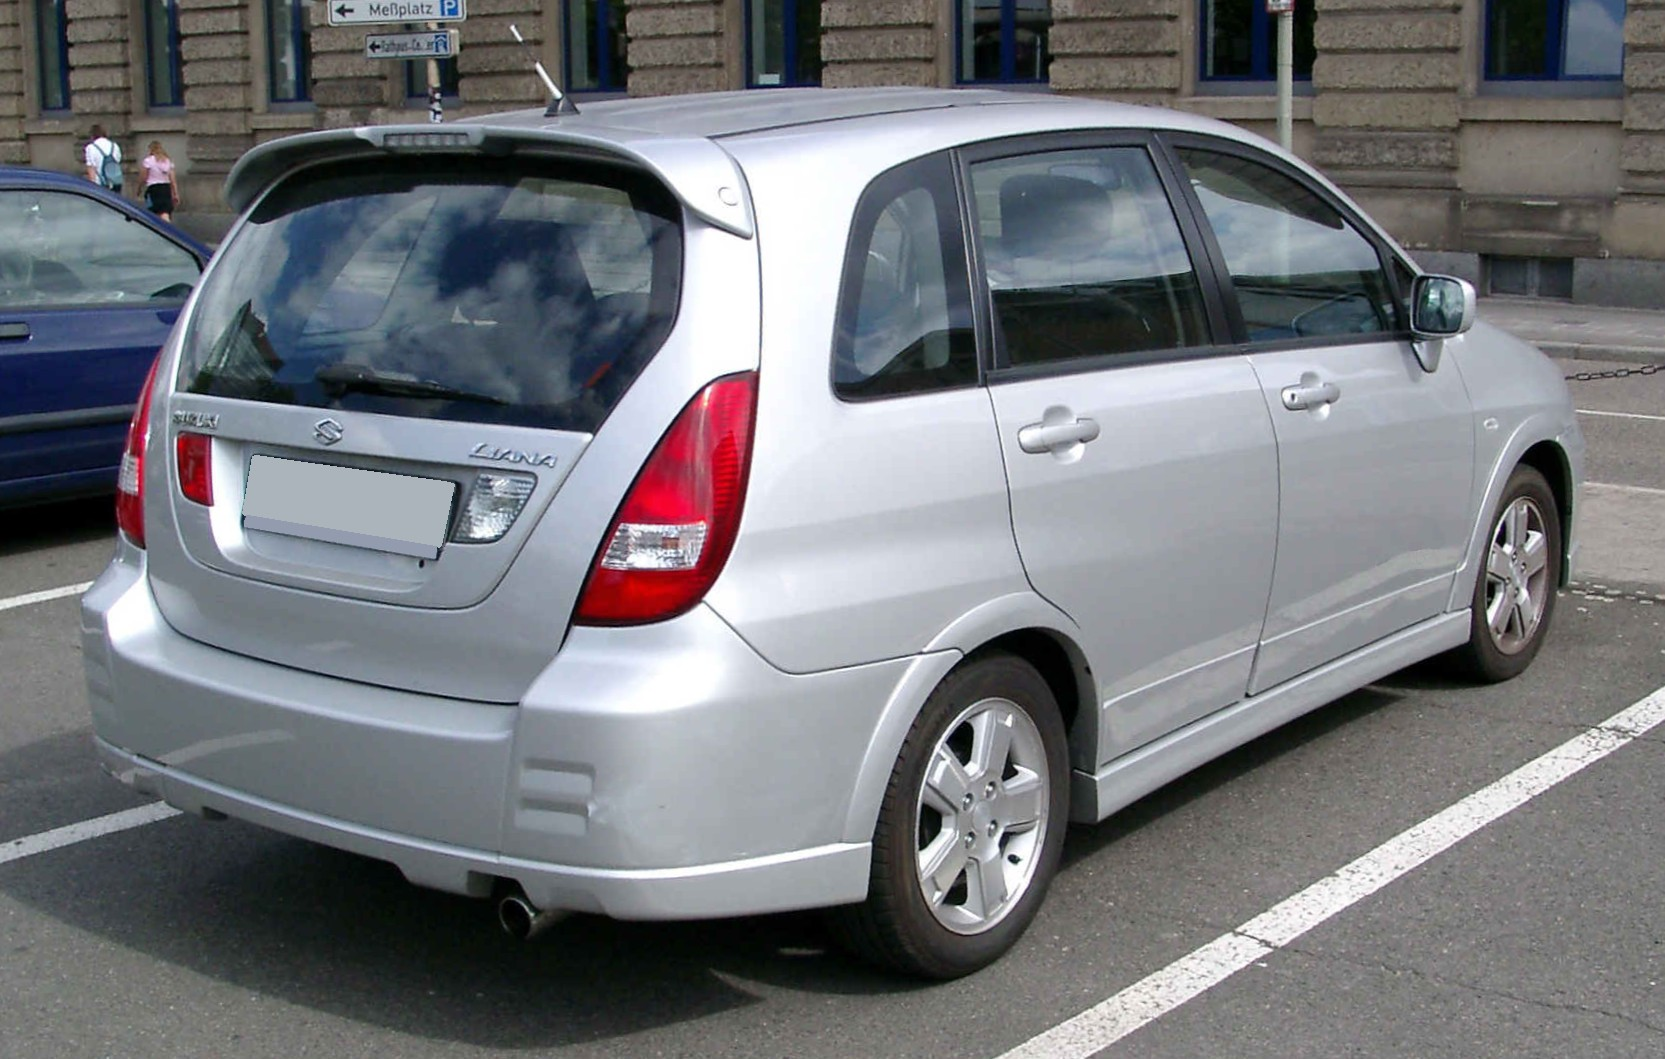 Suzuki liana photo - 1